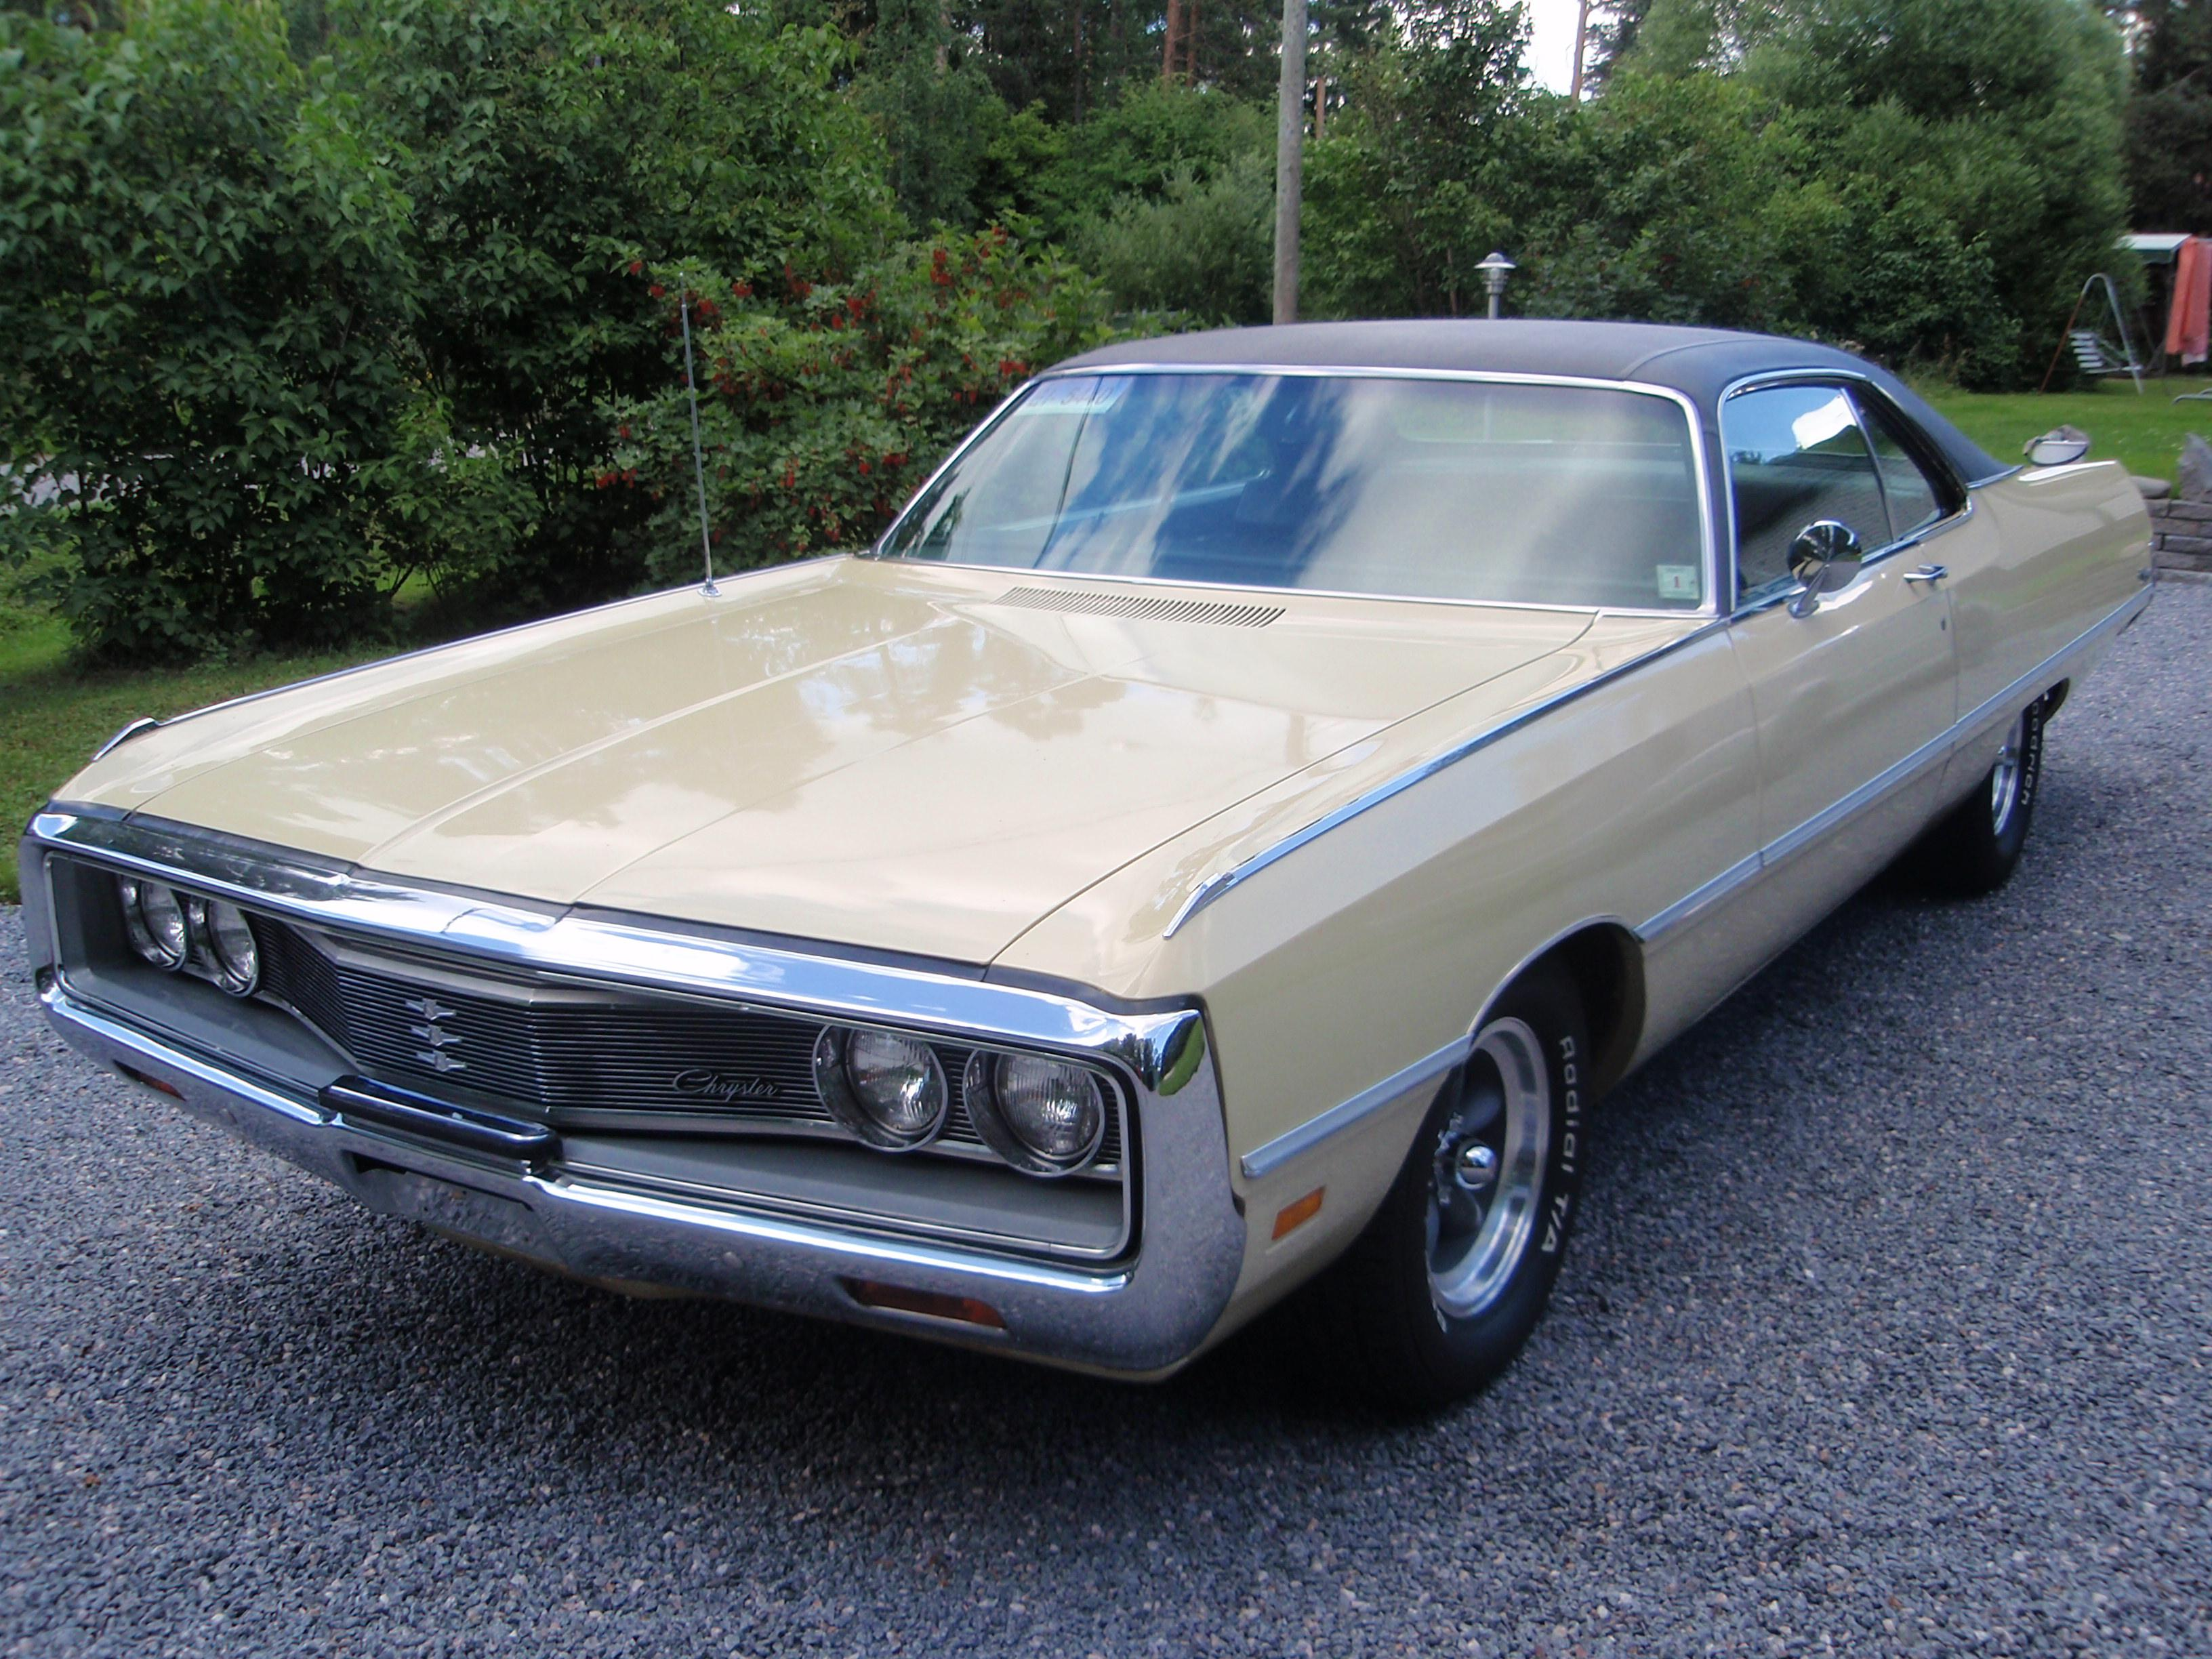 1969 Chrysler Newport Information And Photos Momentcar